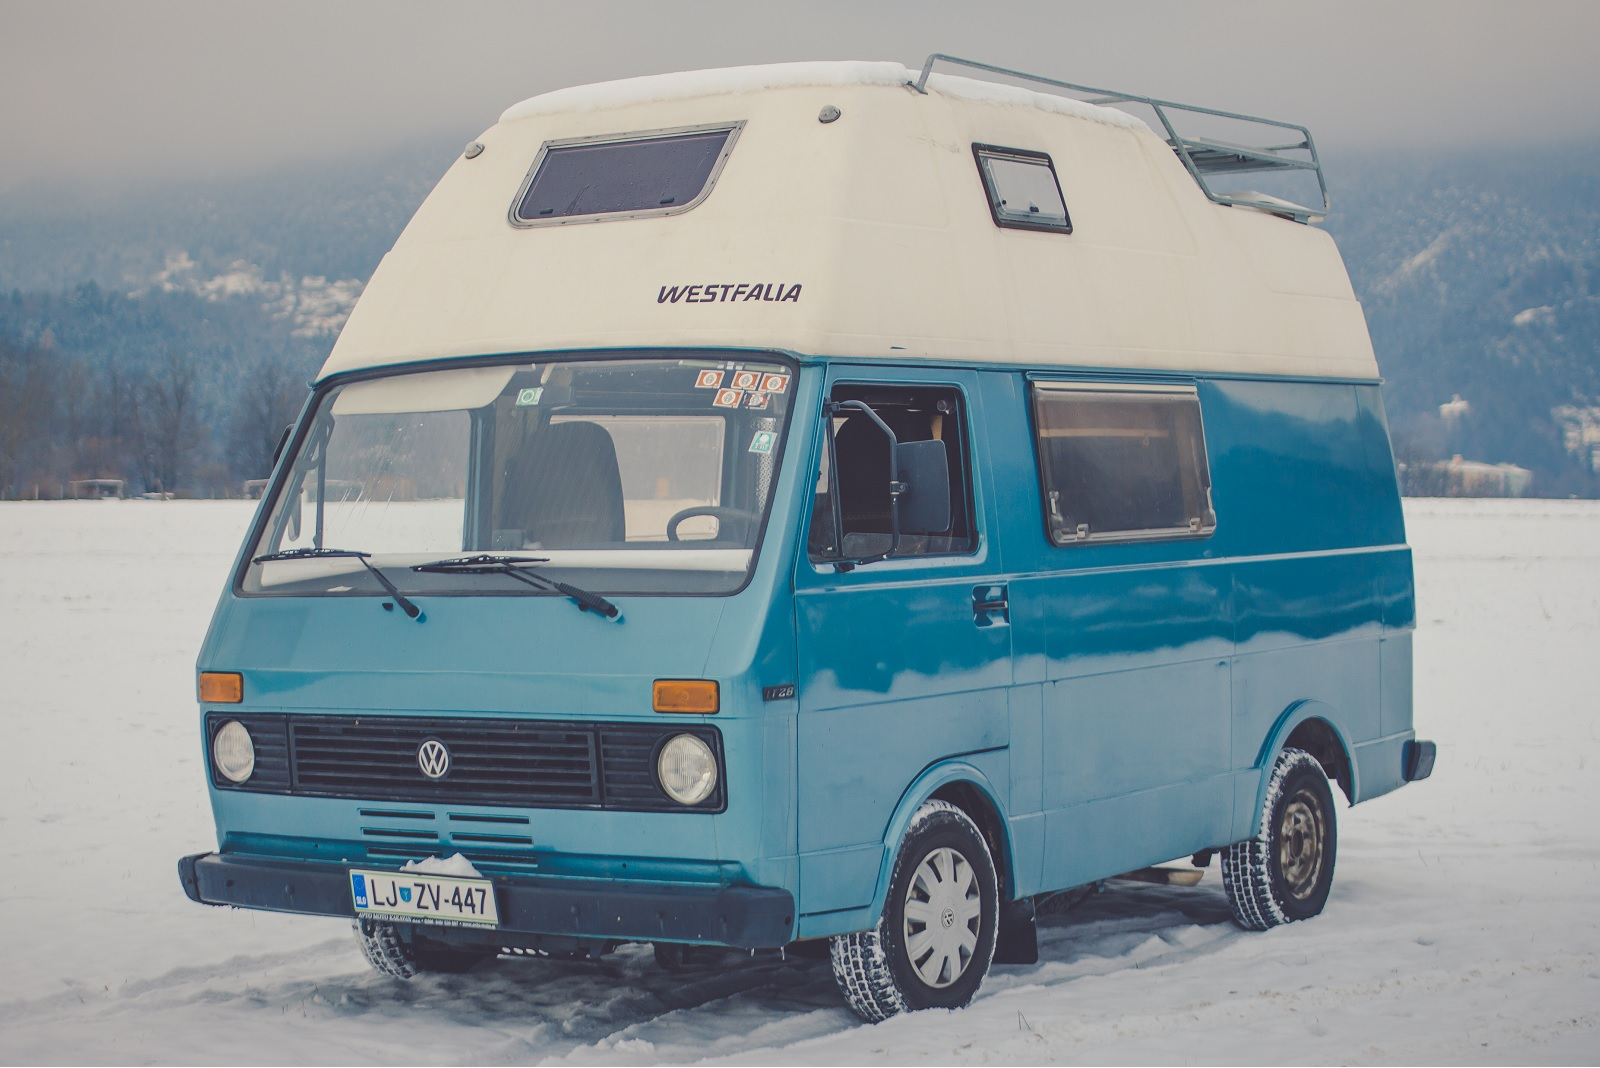 Camper winter